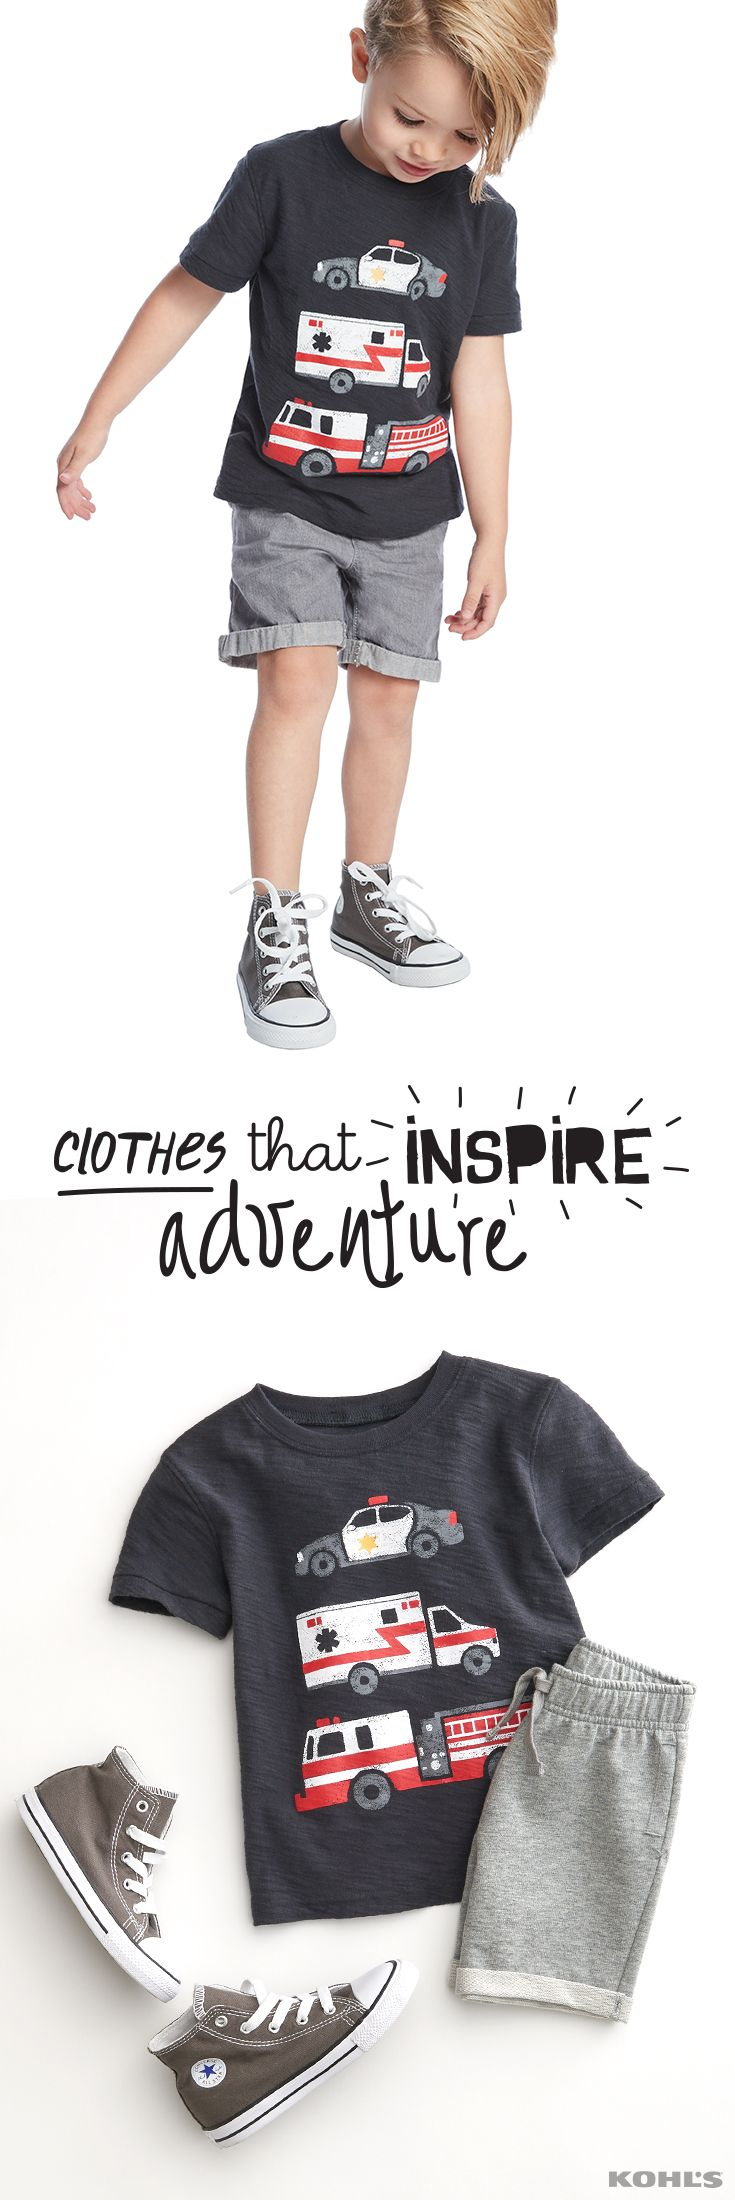 For parents and kids that want durable play clothes and fun style at the same time, Jumping Beans has a whole new look that hits all the marks. Get easy to pair, easy to wear Jumping Beans clothes for kids at Kohl's.